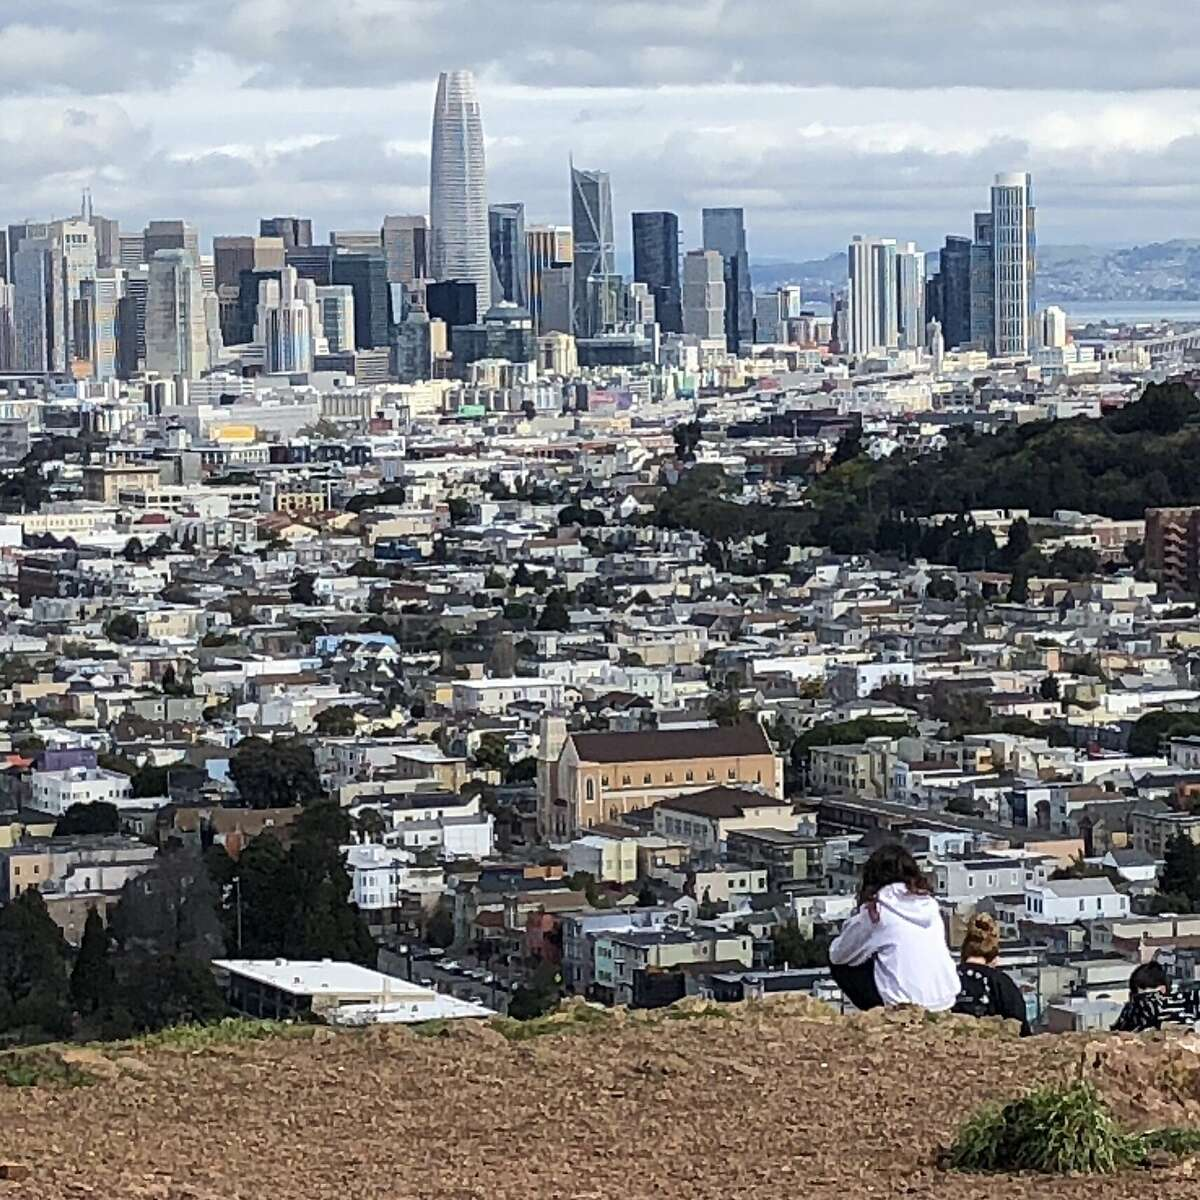 The view of San Francisco from Bernal hill